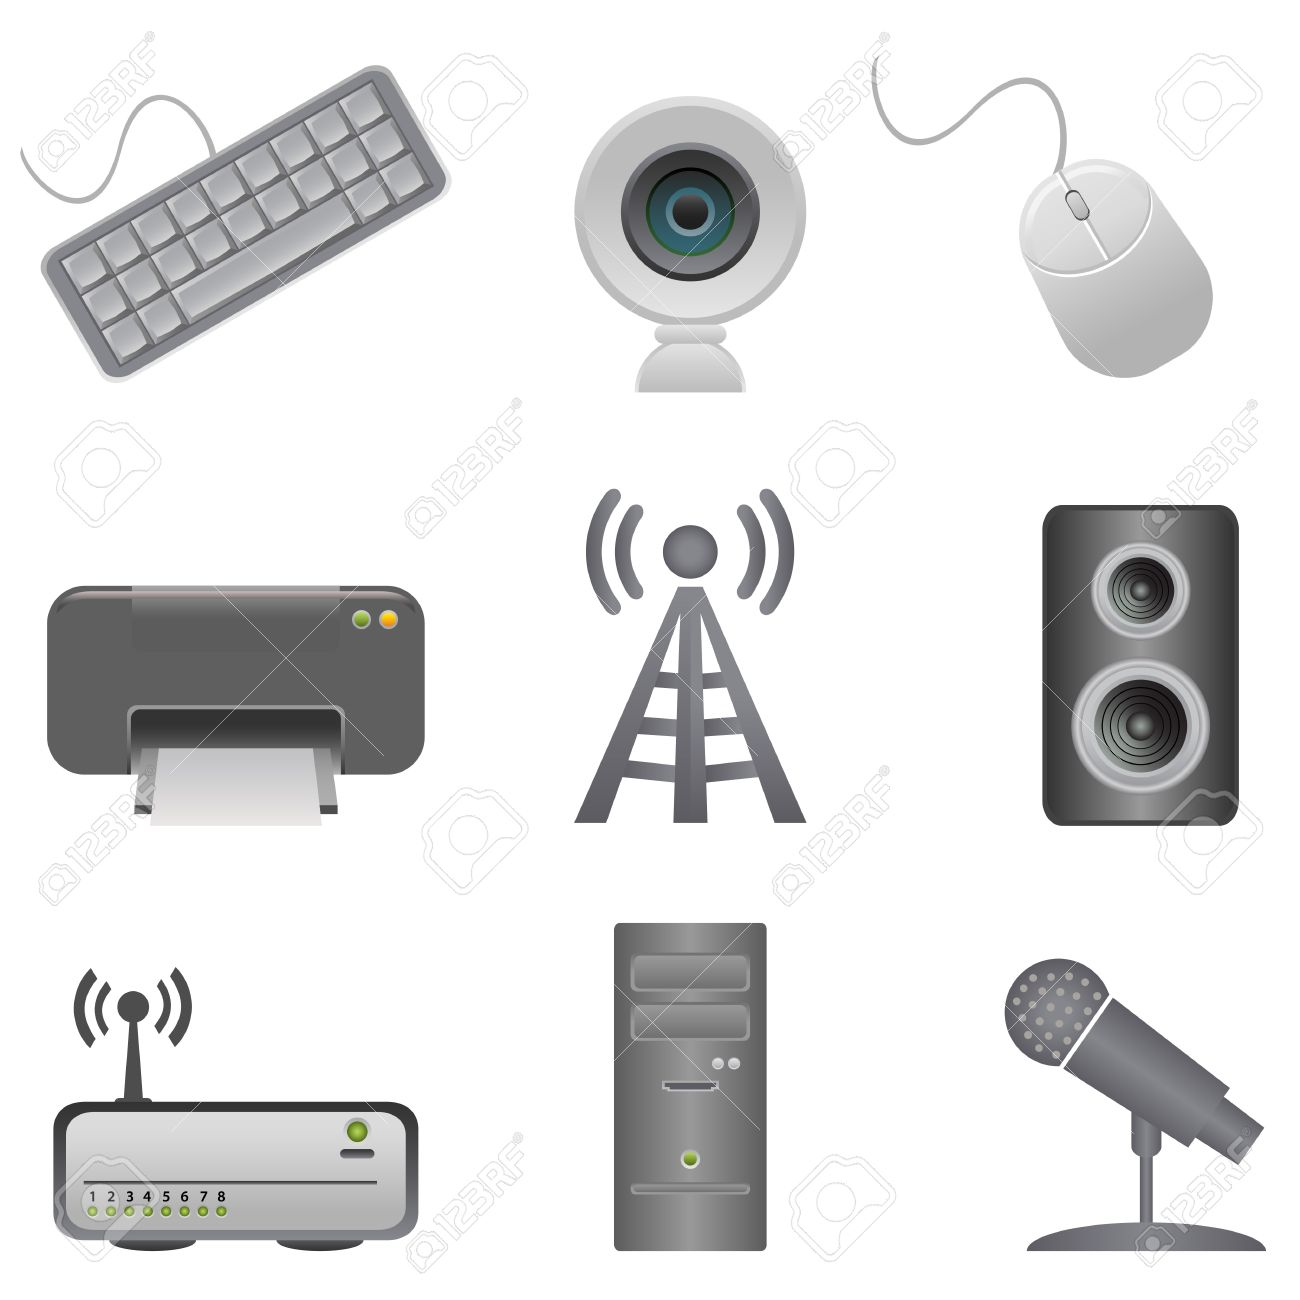 Various Computer Peripherals And Accessories Royalty Free Cliparts.